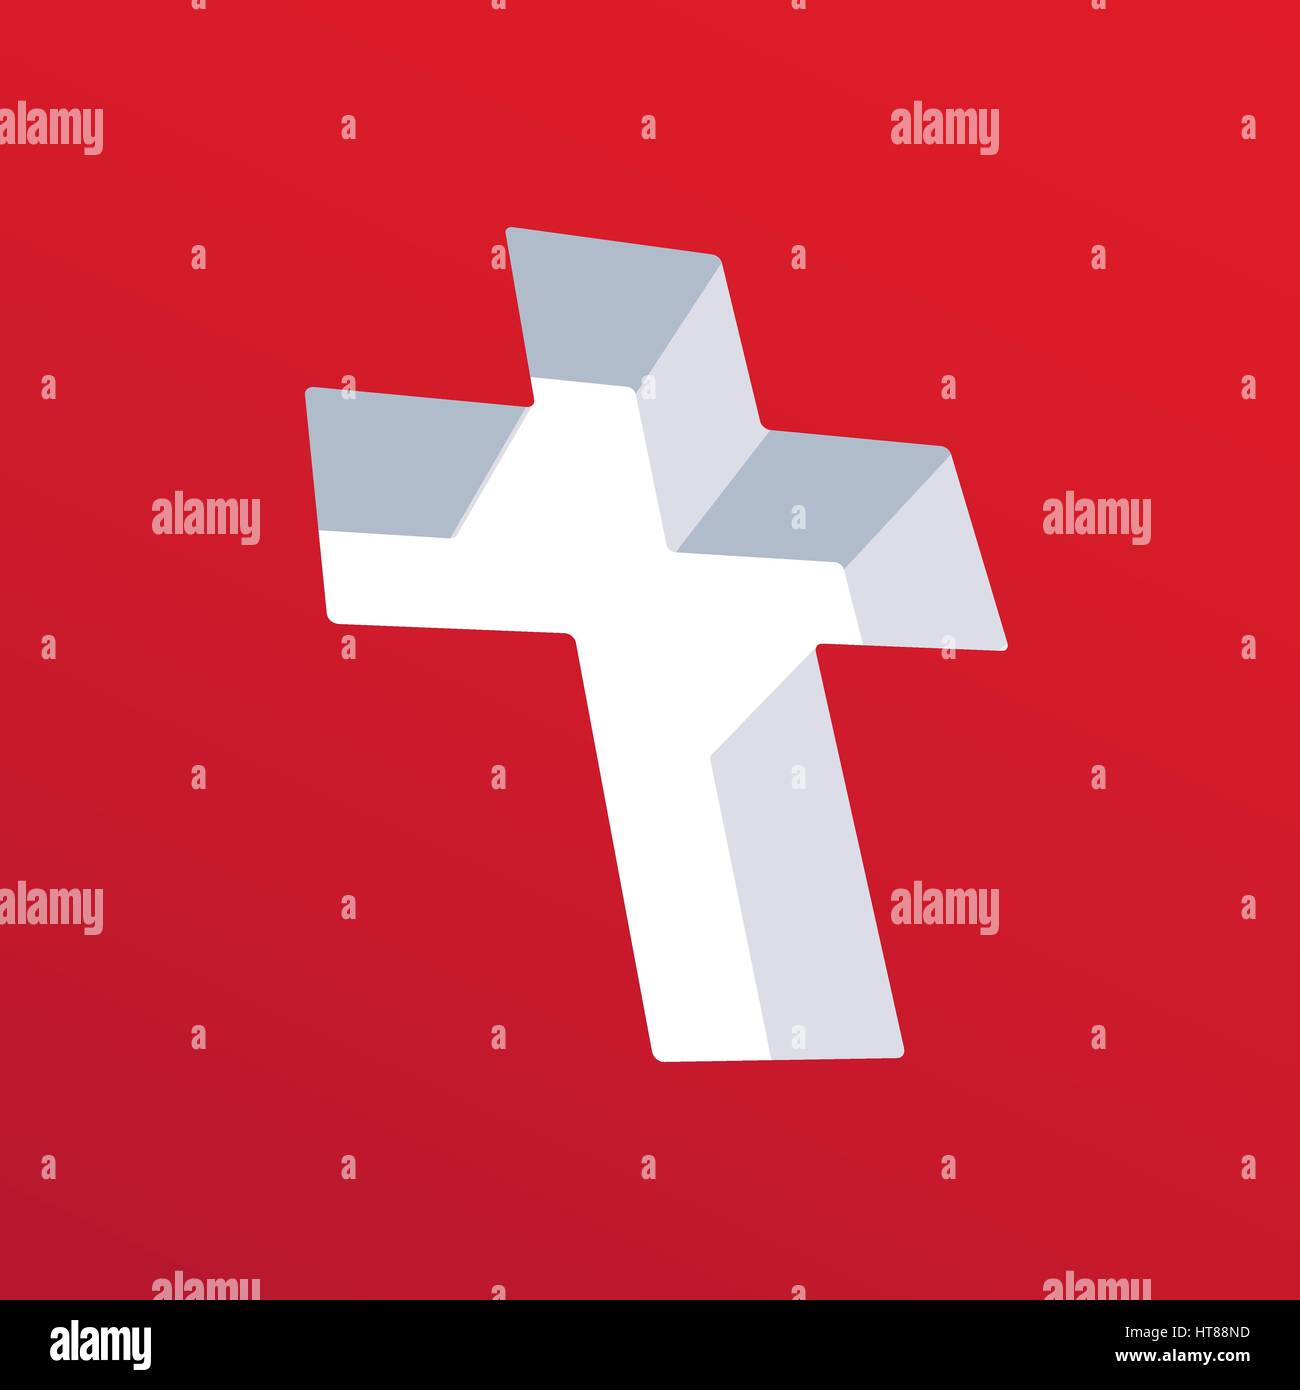 Symbolism of christianity cross on a red background stock vector symbolism of christianity cross on a red background biocorpaavc Choice Image